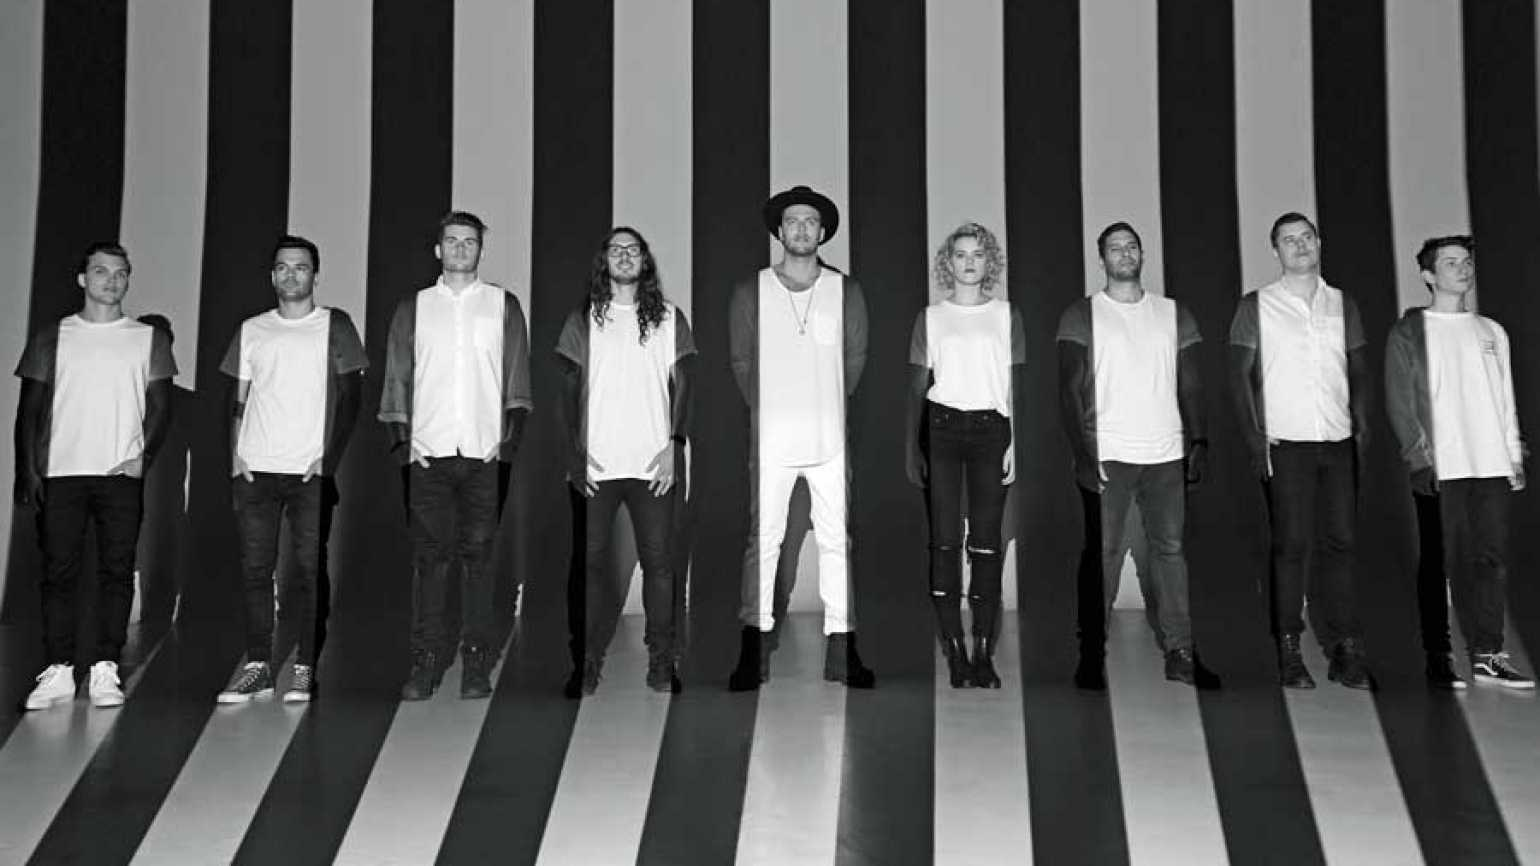 Members of the band Hillsong United